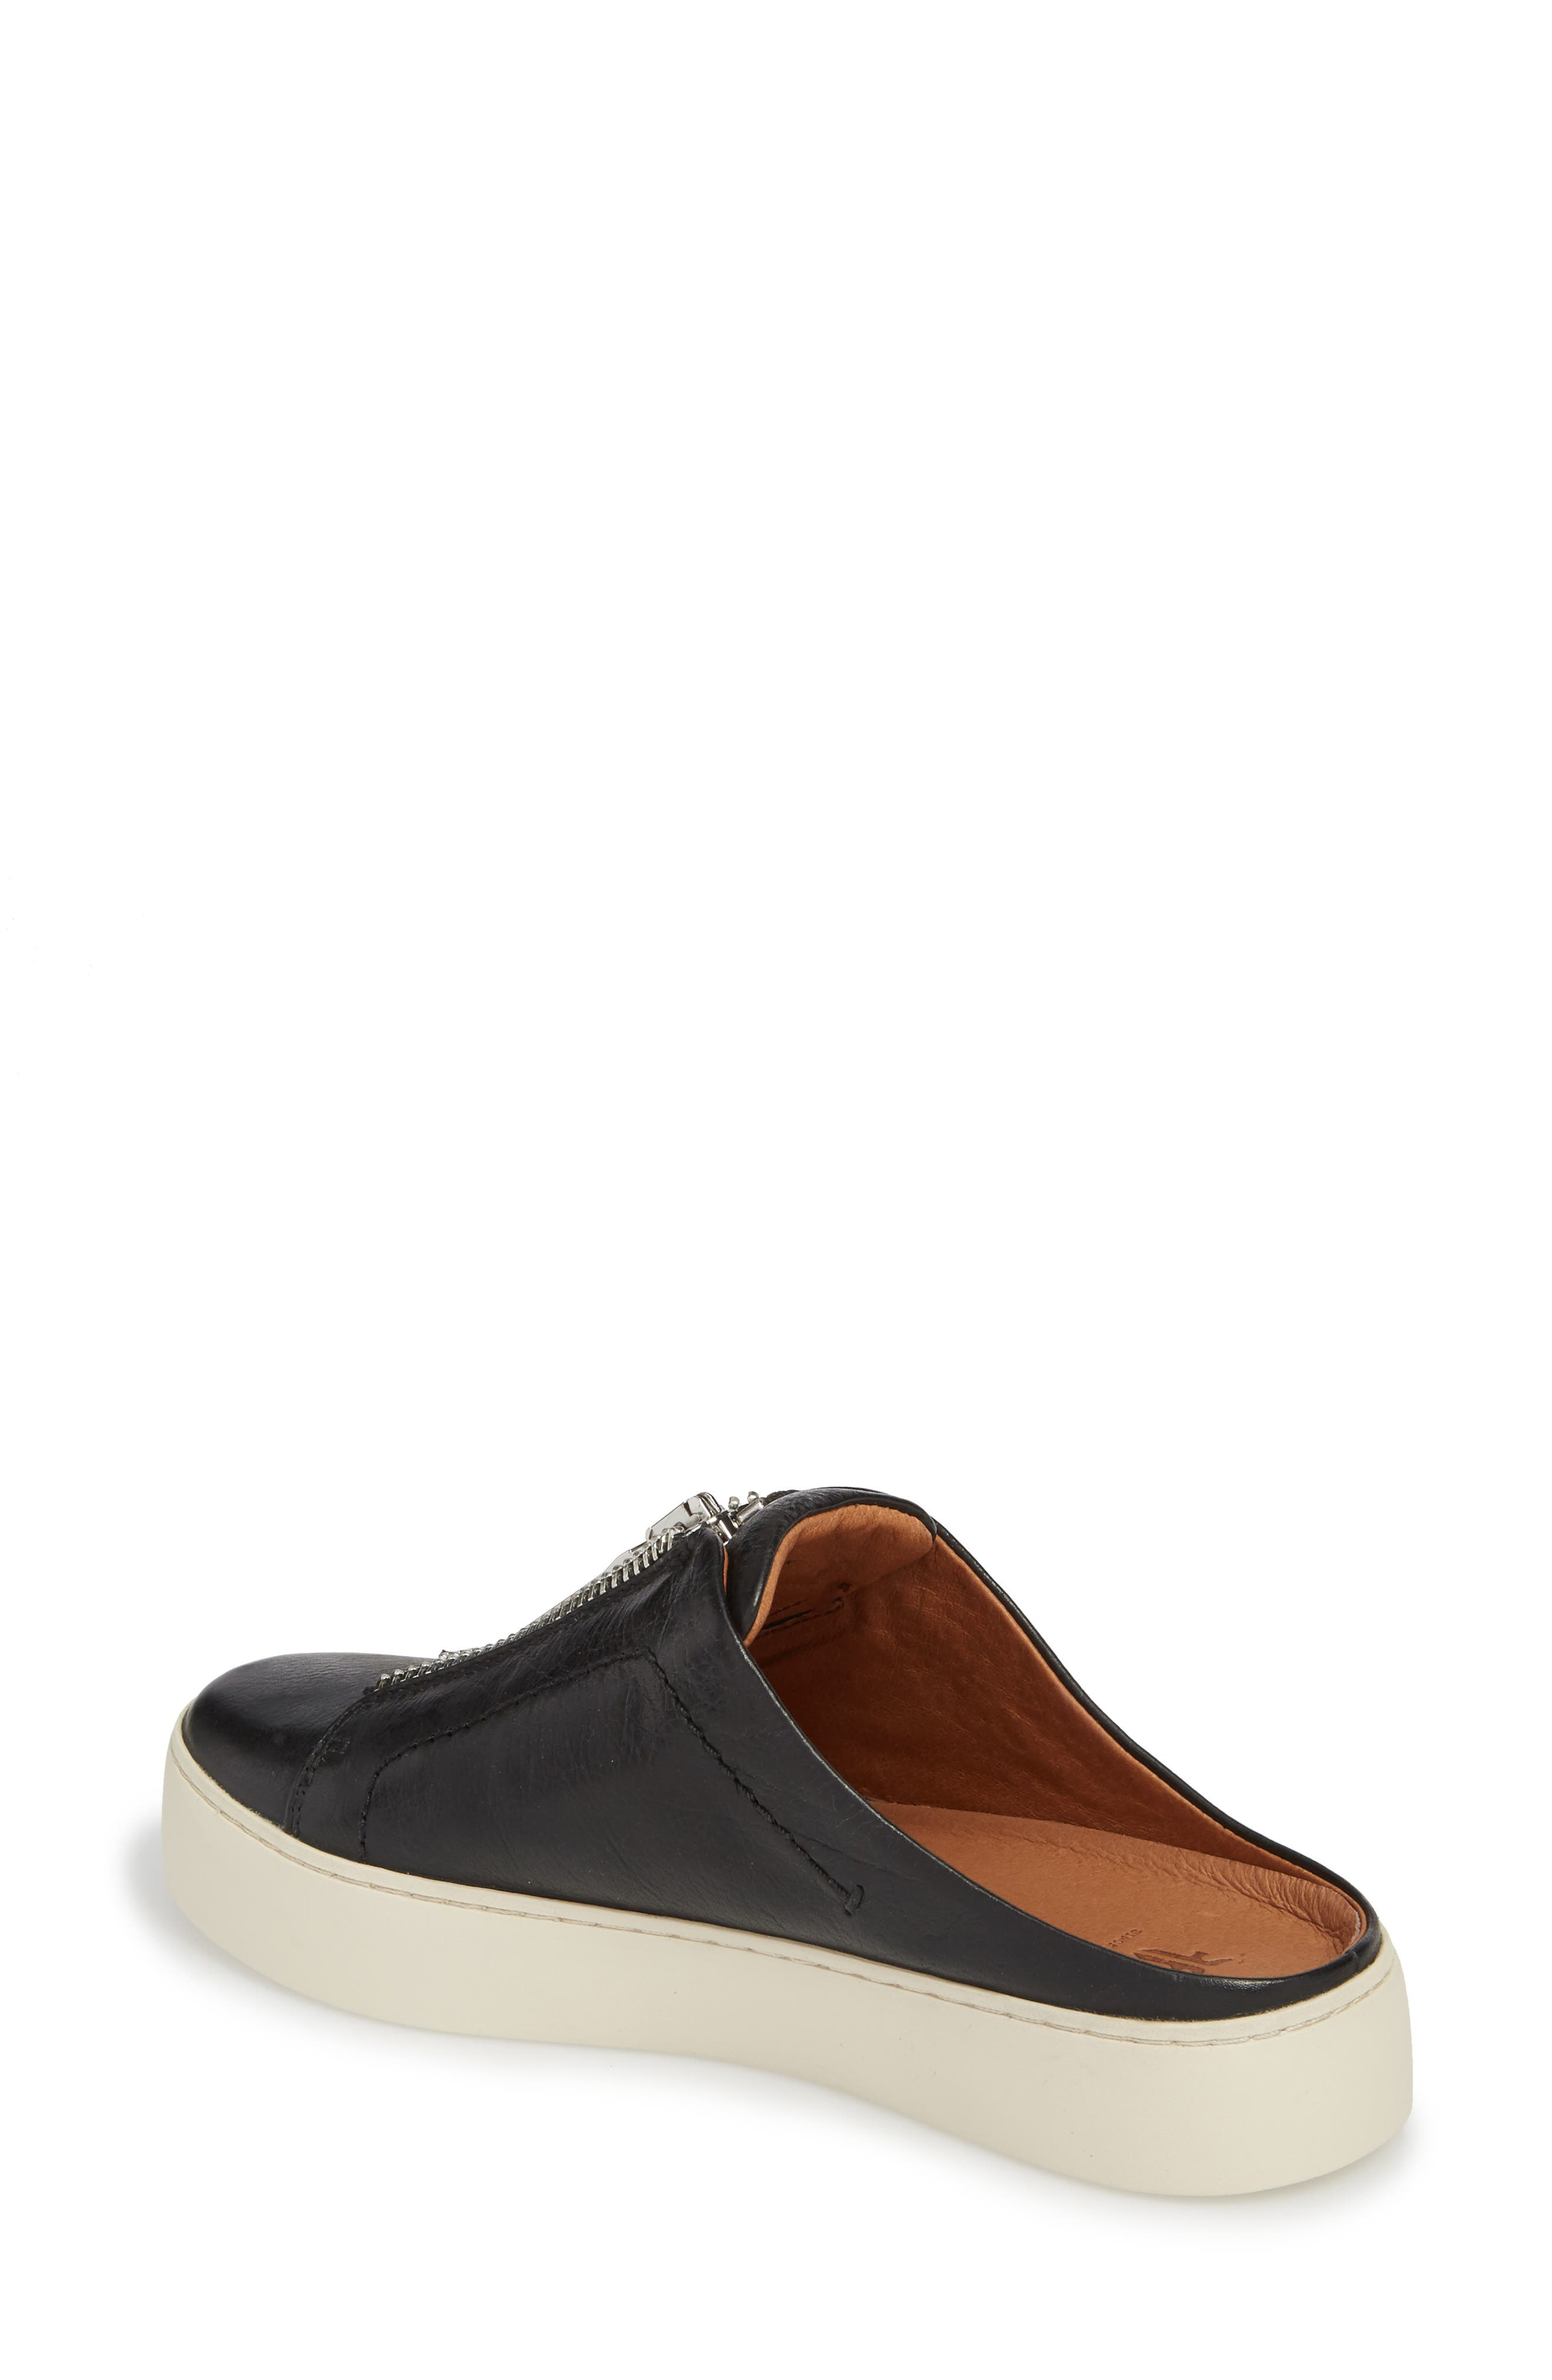 Lena Platform Sneaker Mule,                             Alternate thumbnail 2, color,                             Black Leather